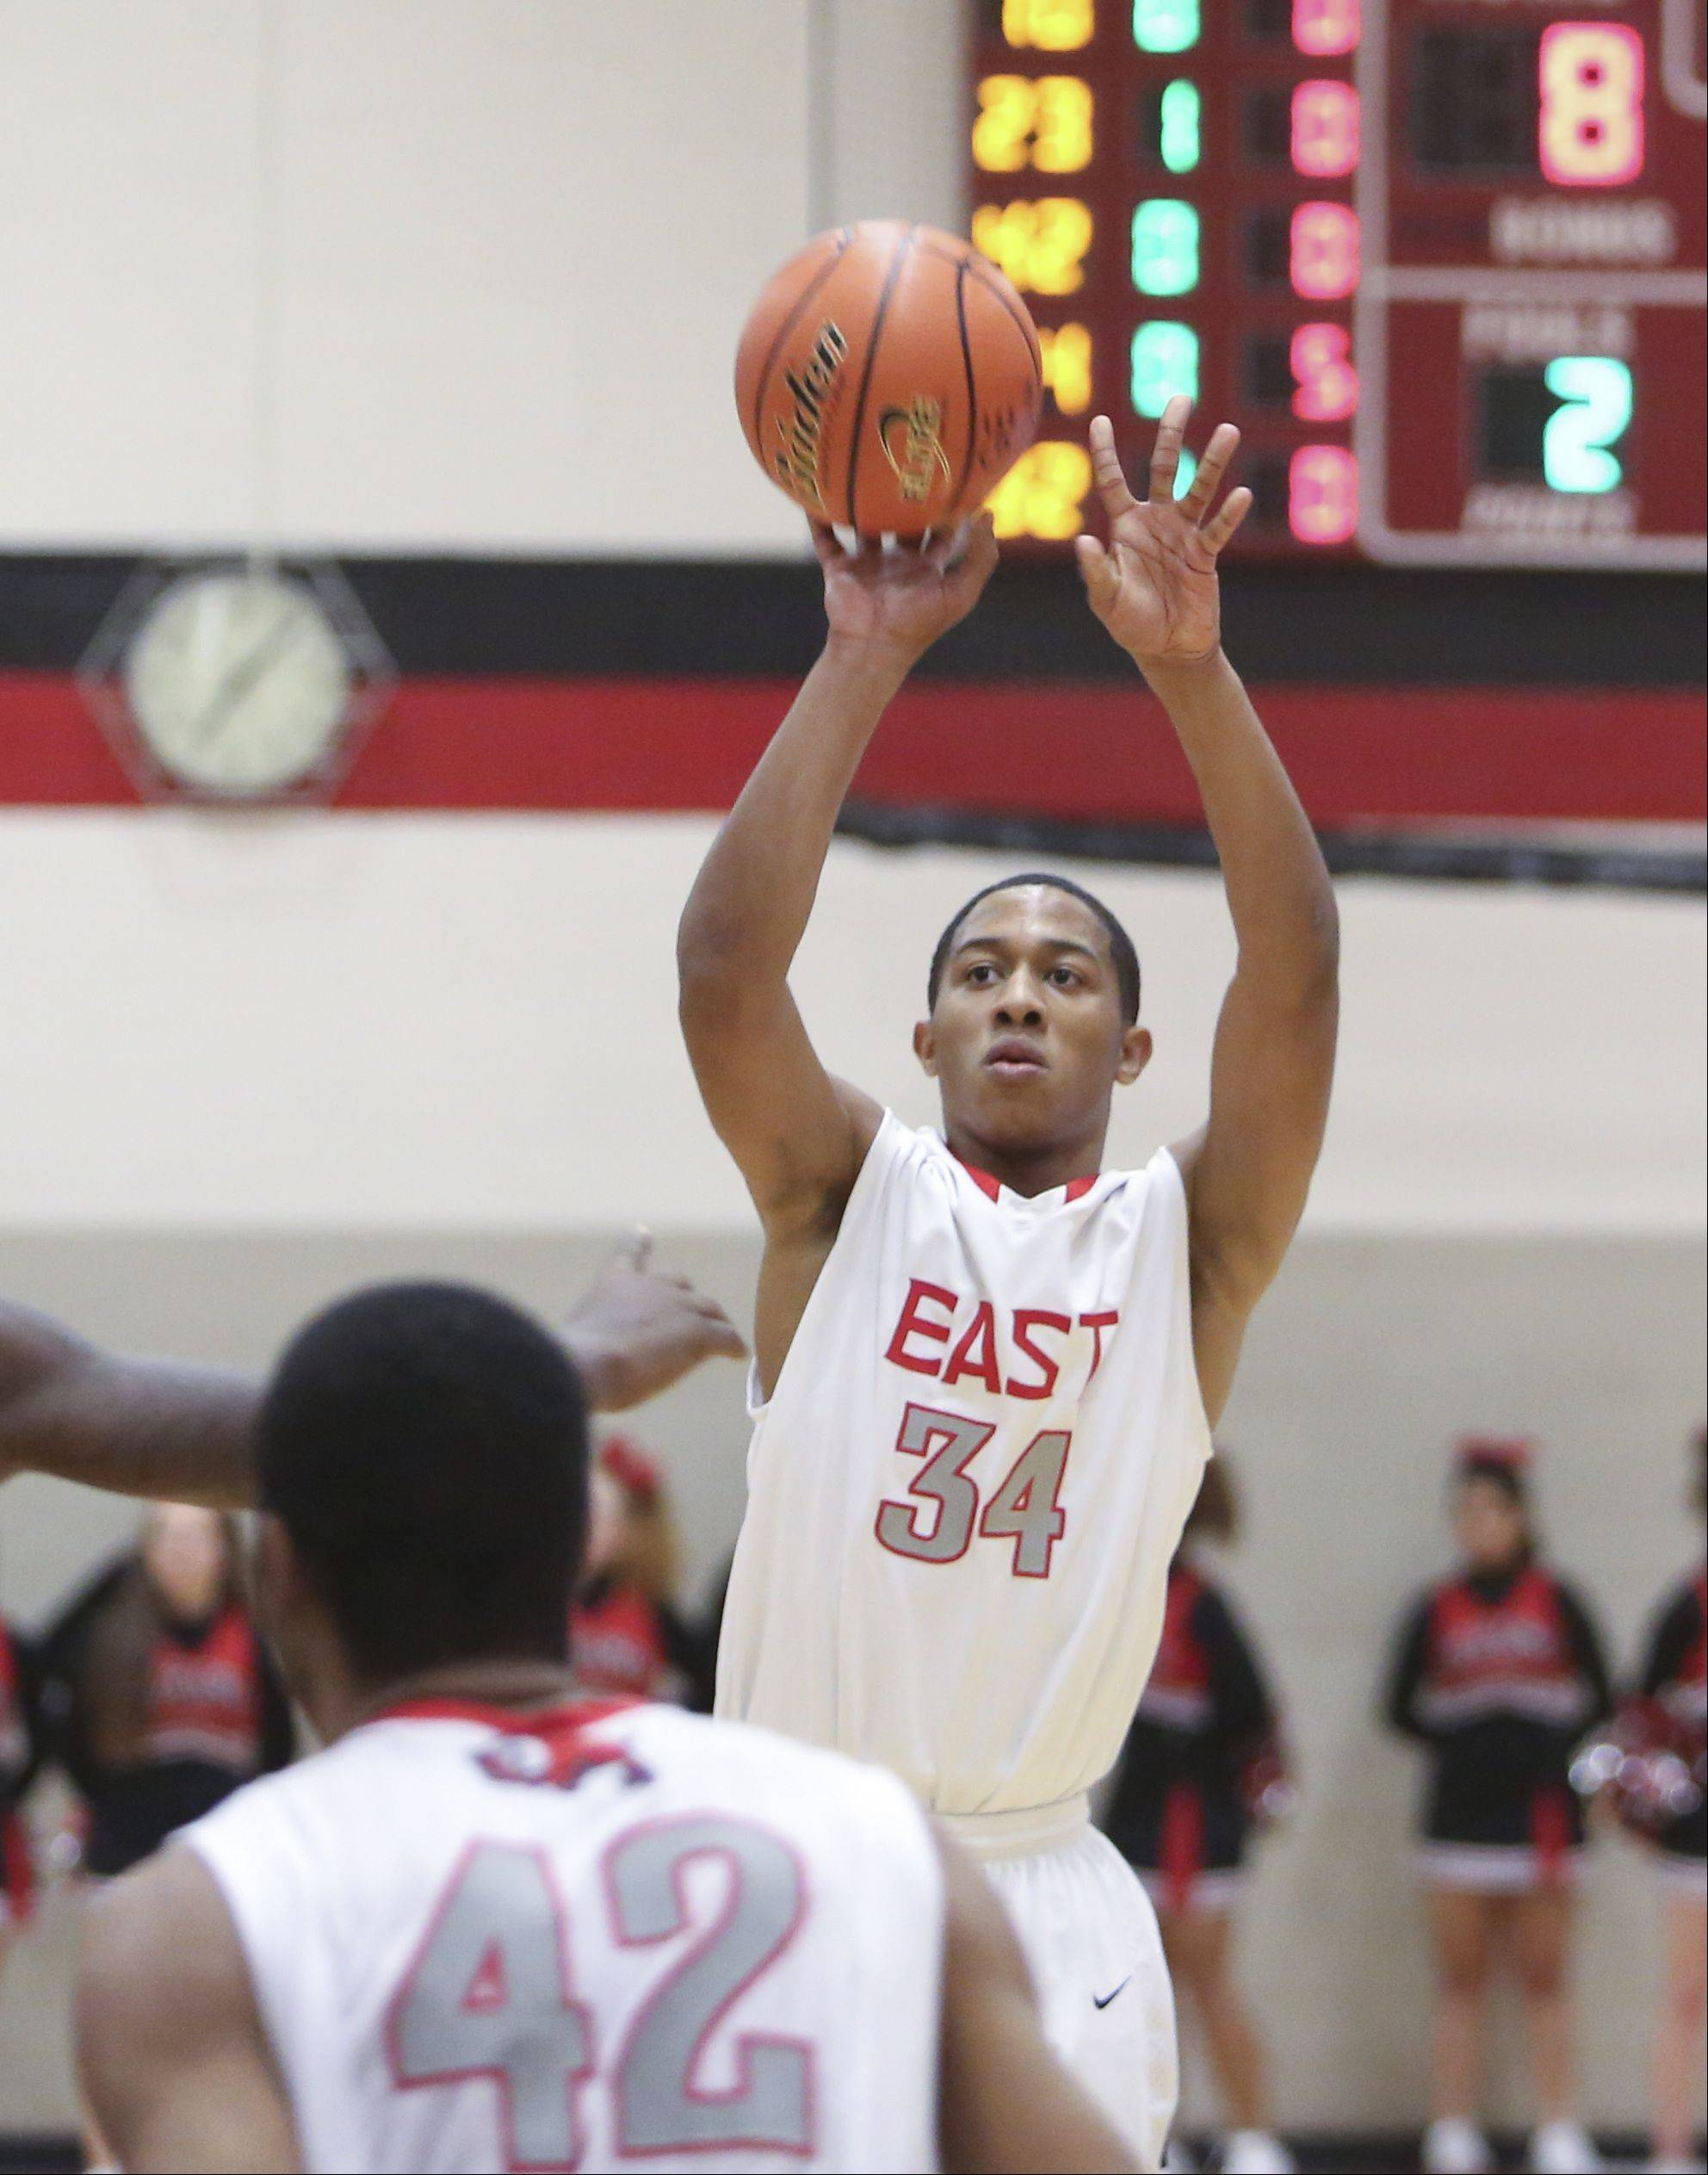 Photos from the Rich South at Glenbard East boys basketball game on Tuesday, Dec. 3.